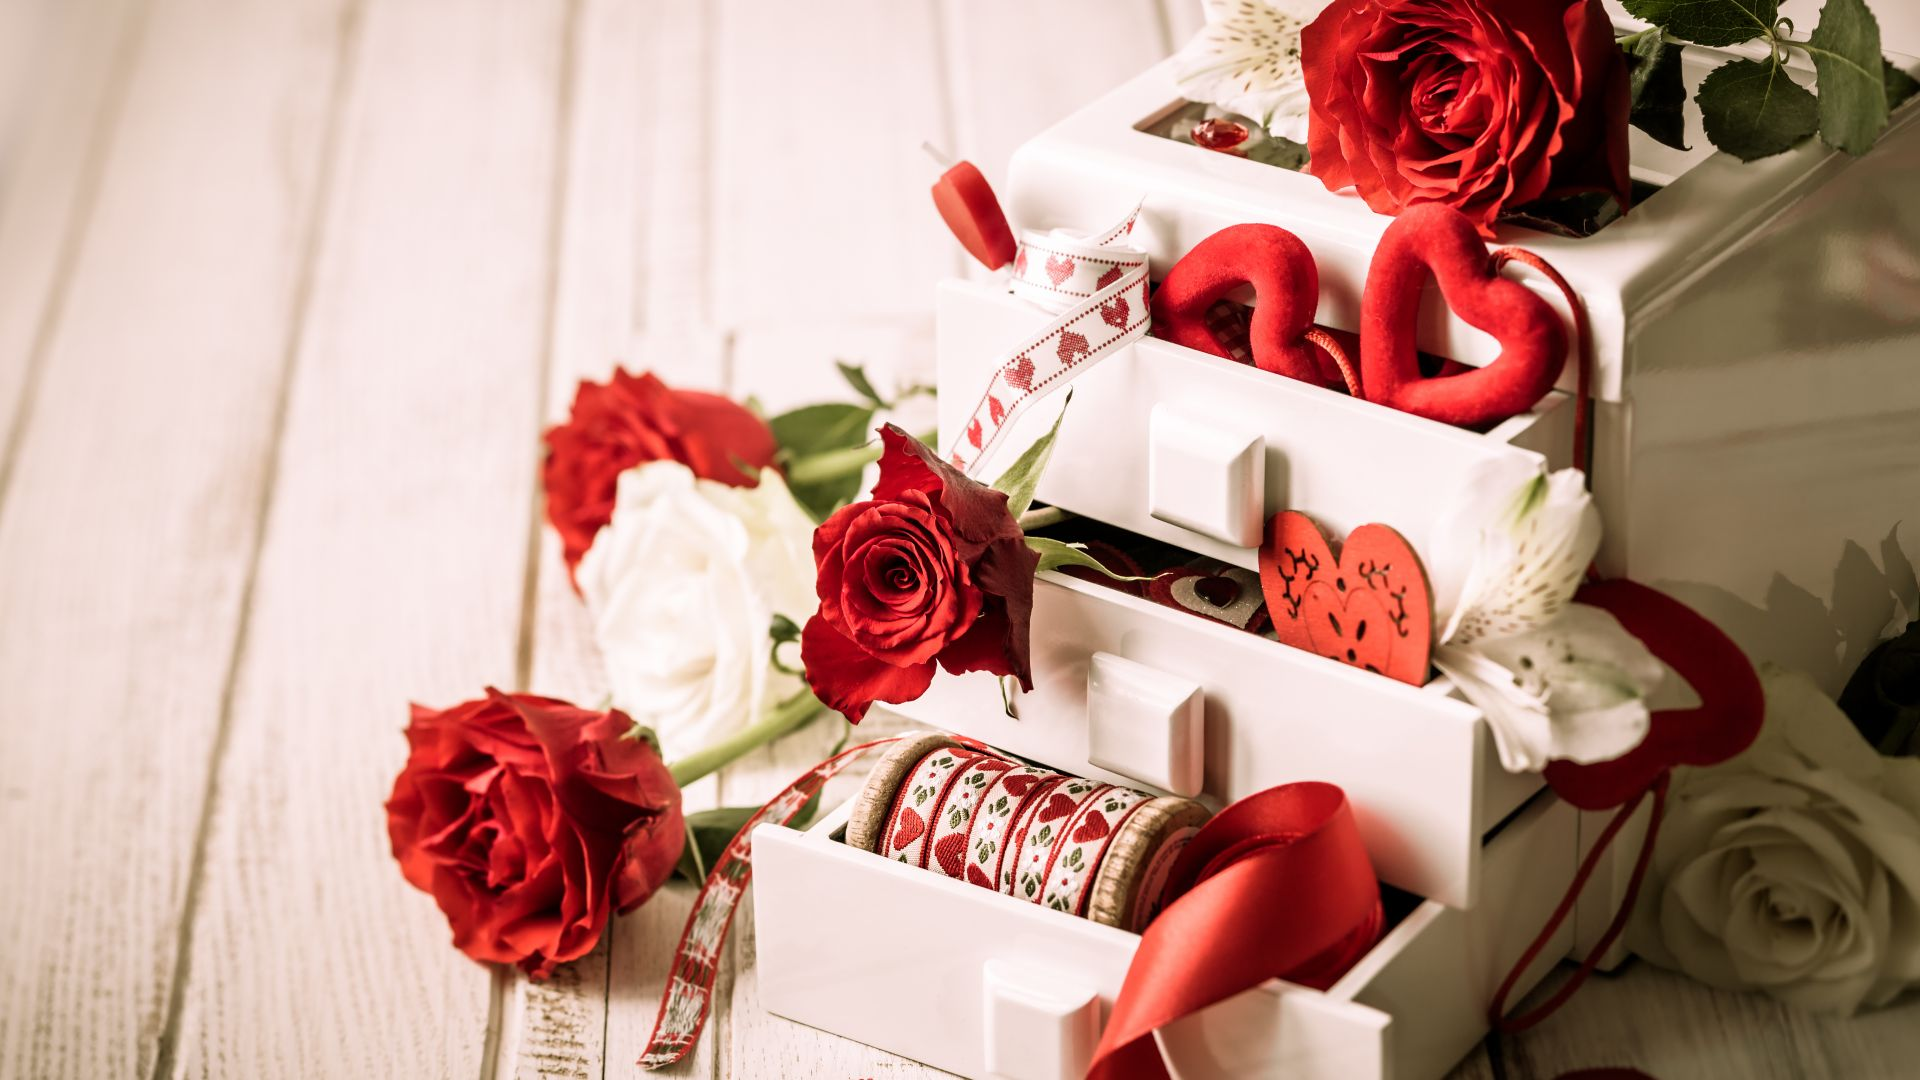 Valentine's Day, rose, heart, ribbon, romantic, love (horizontal)